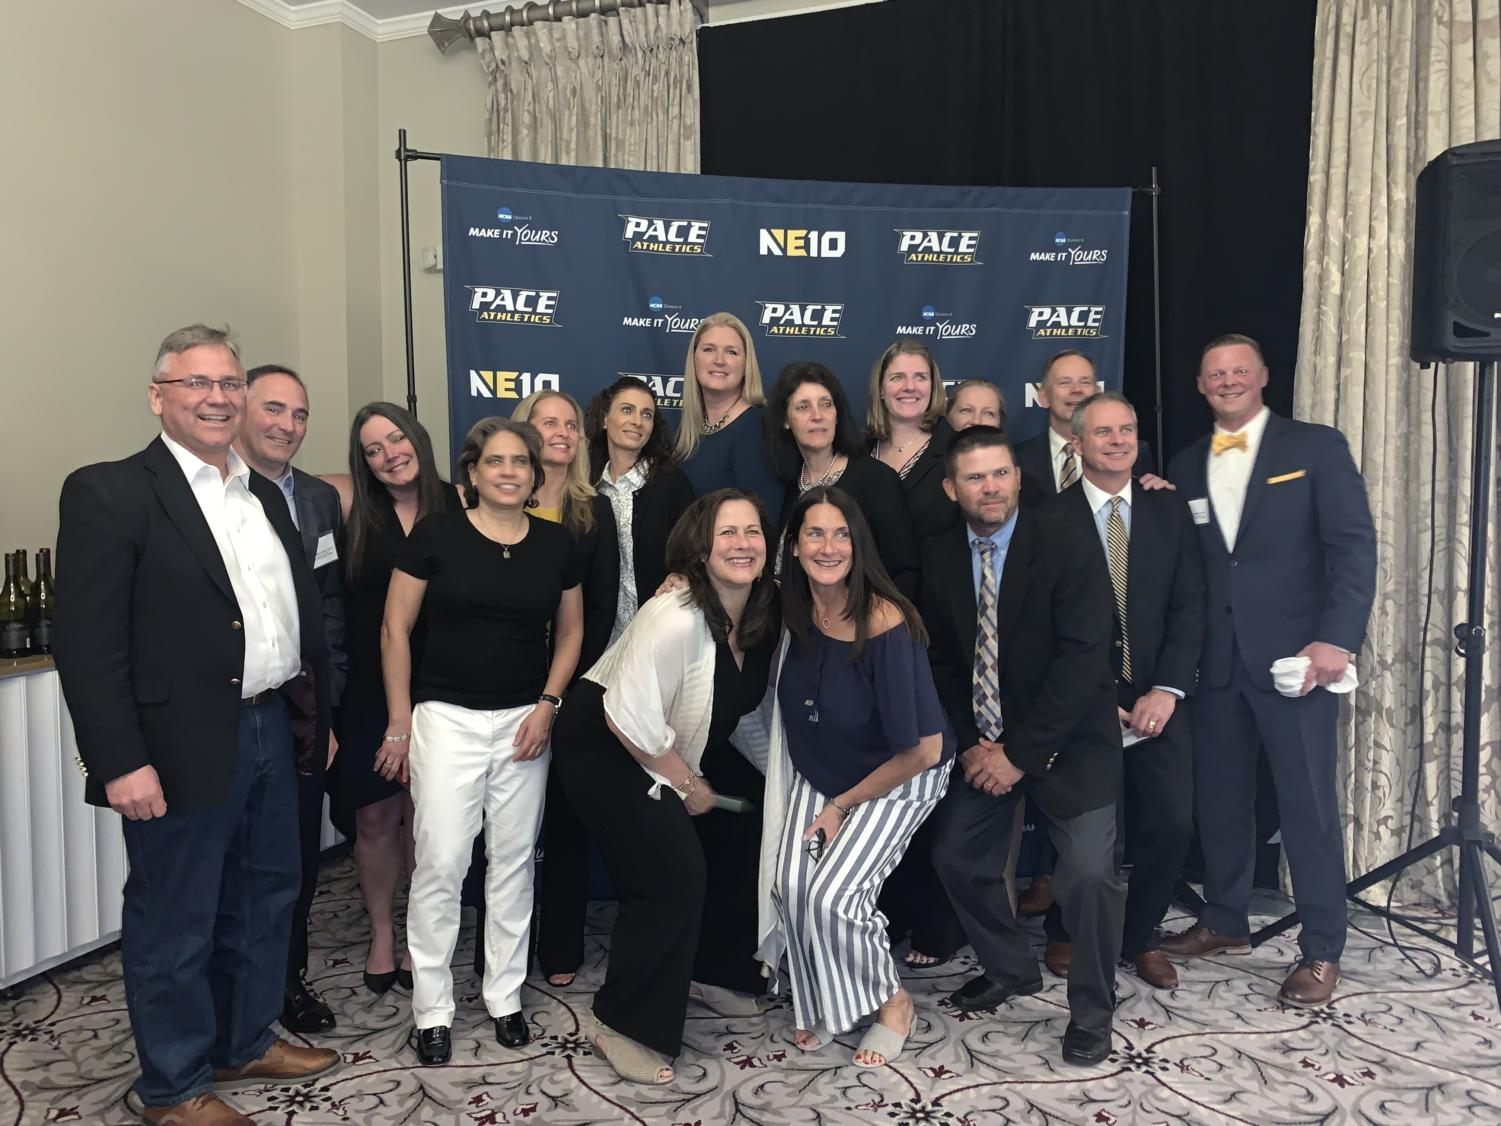 The Hall of Fame class of 2019 celebrate alongside the Pace Athletics community of past and present.